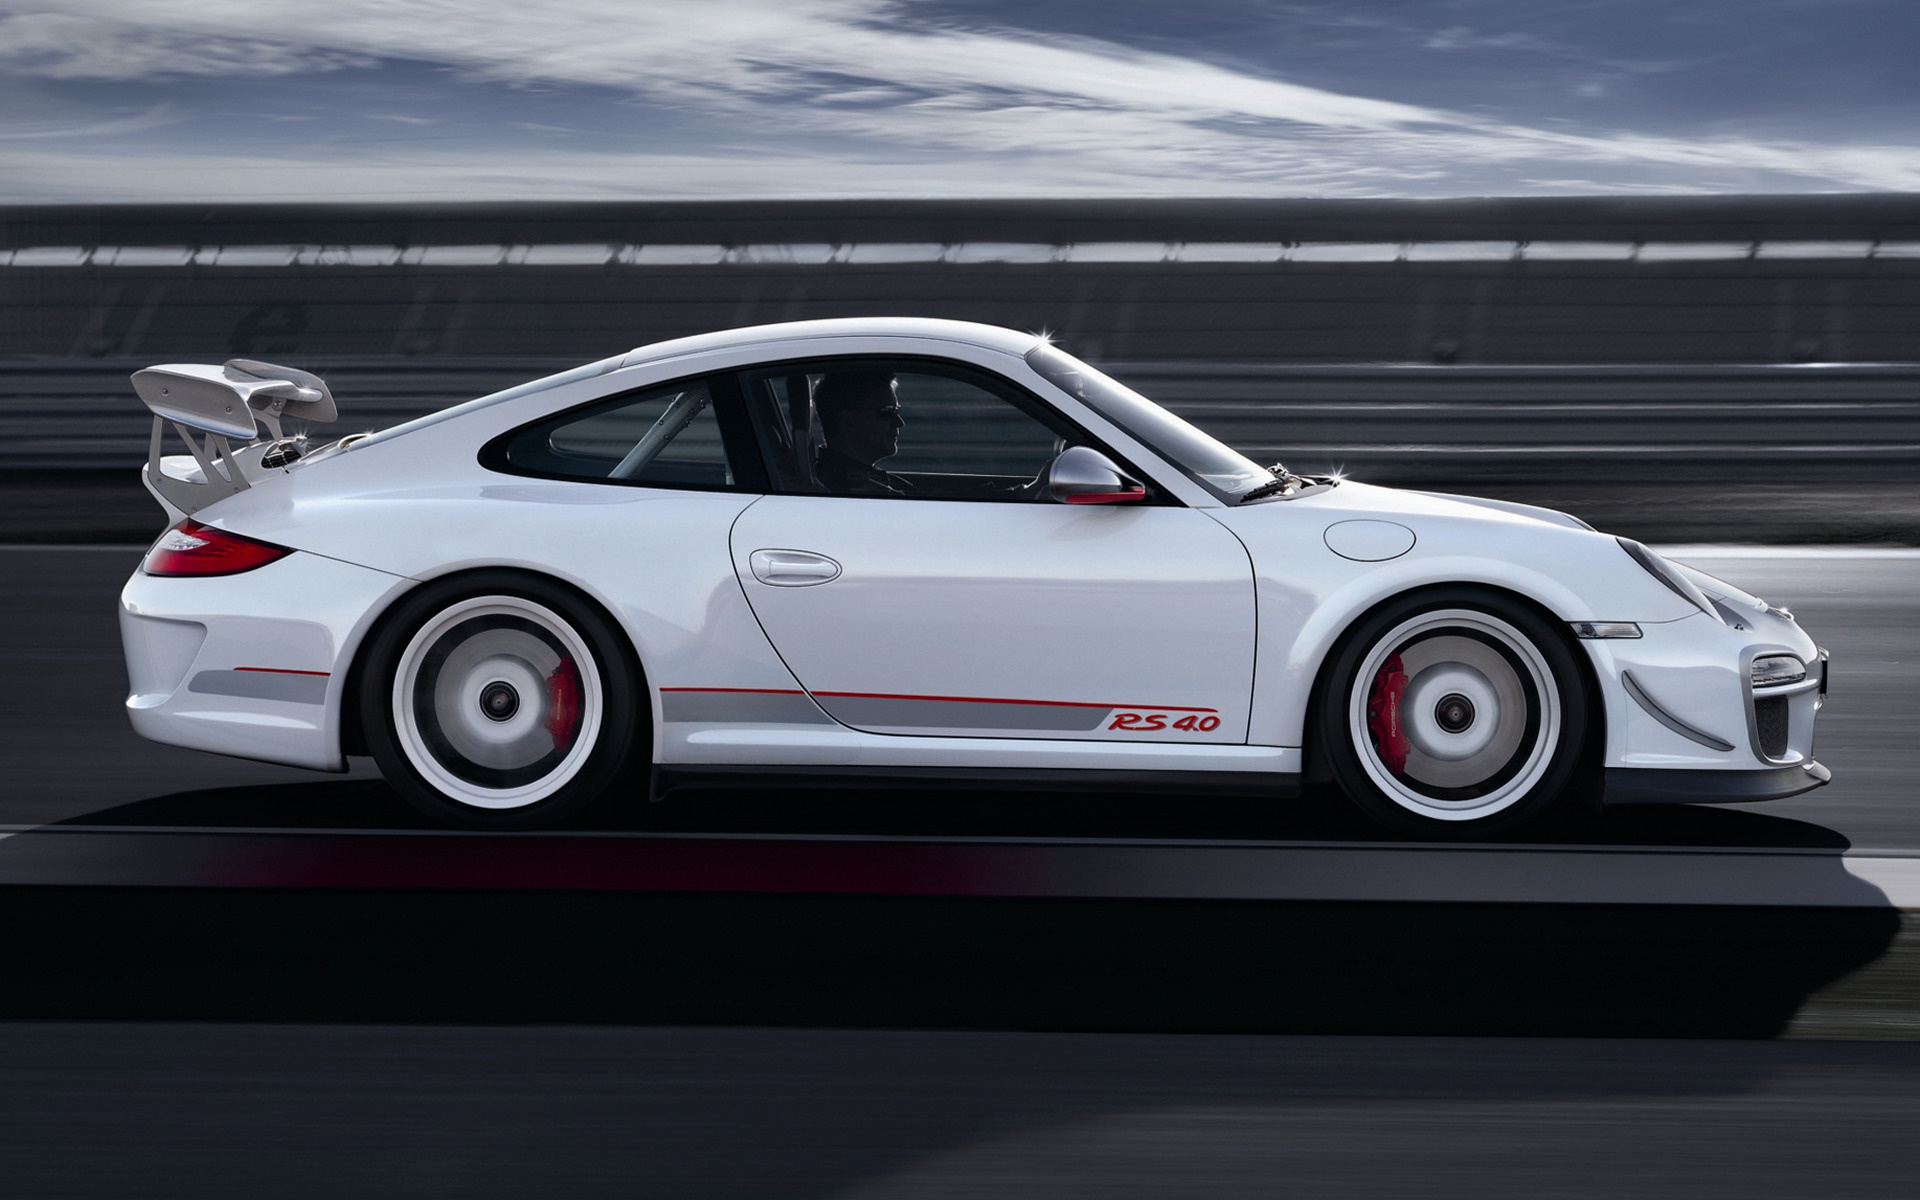 Porsche 911 GT3 RS 4.0 (2011) Wallpapers and HD Images - Car Pixel